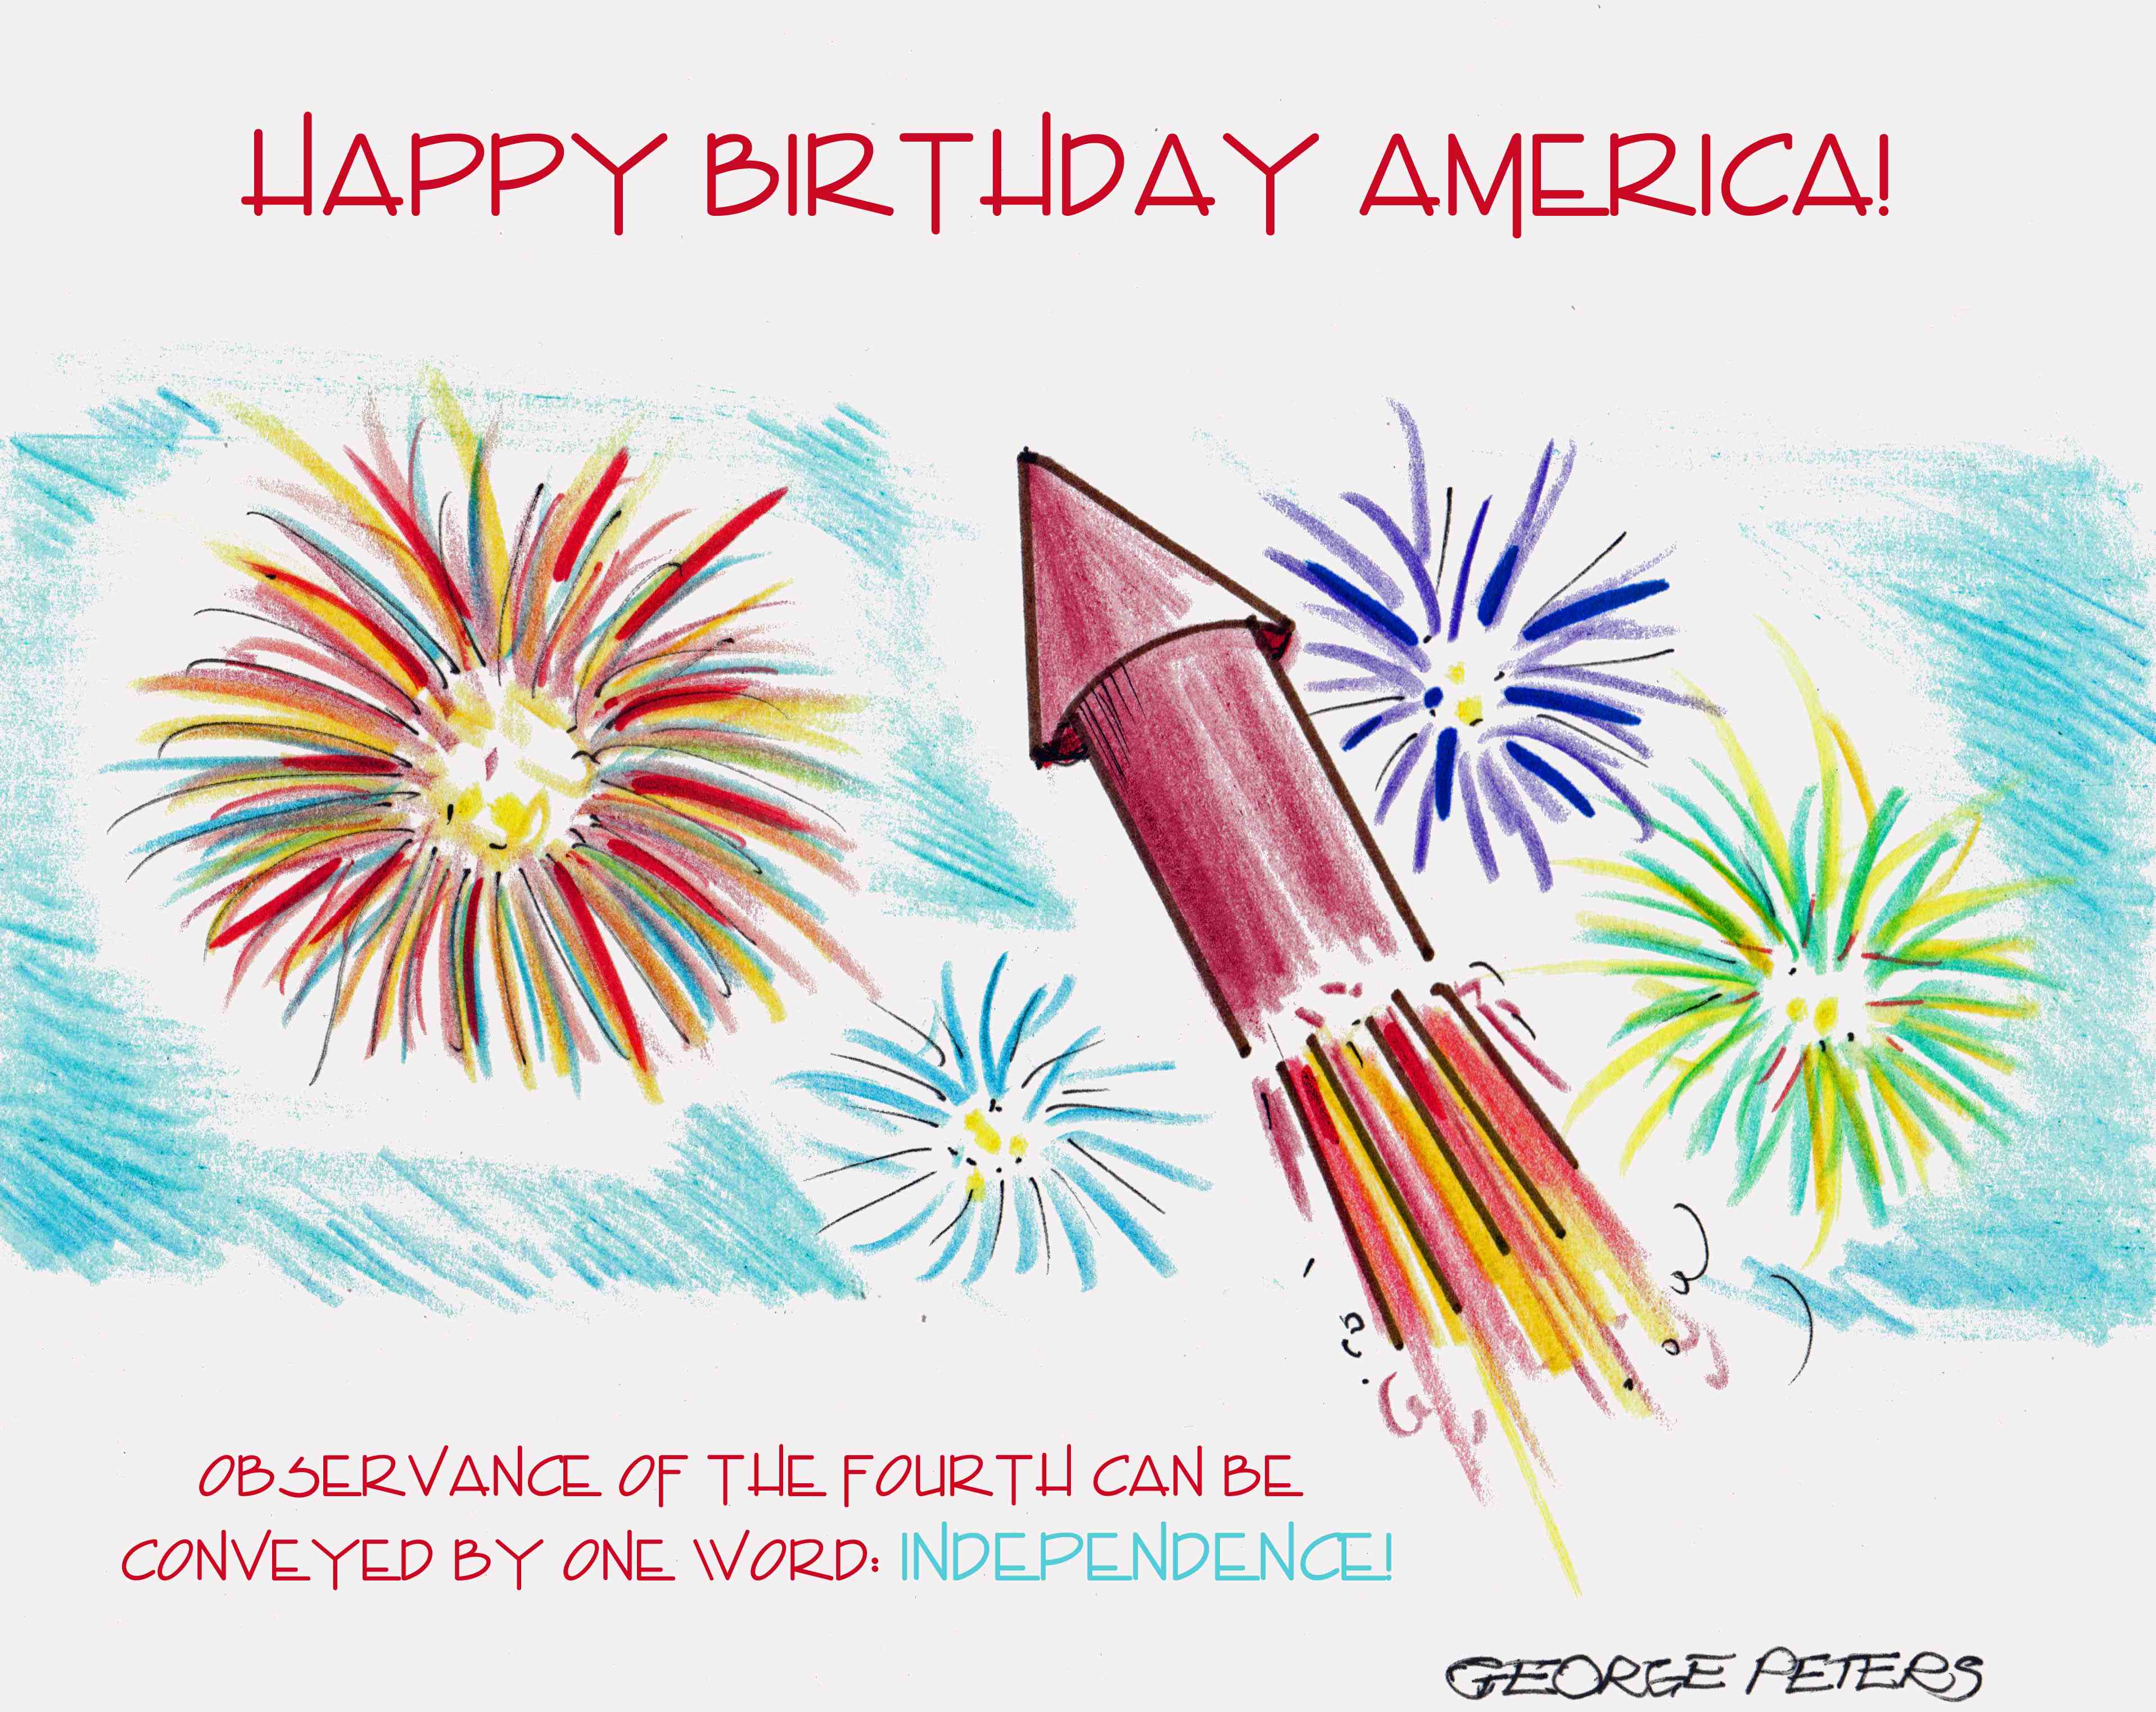 s cartoon 4th of july 2013